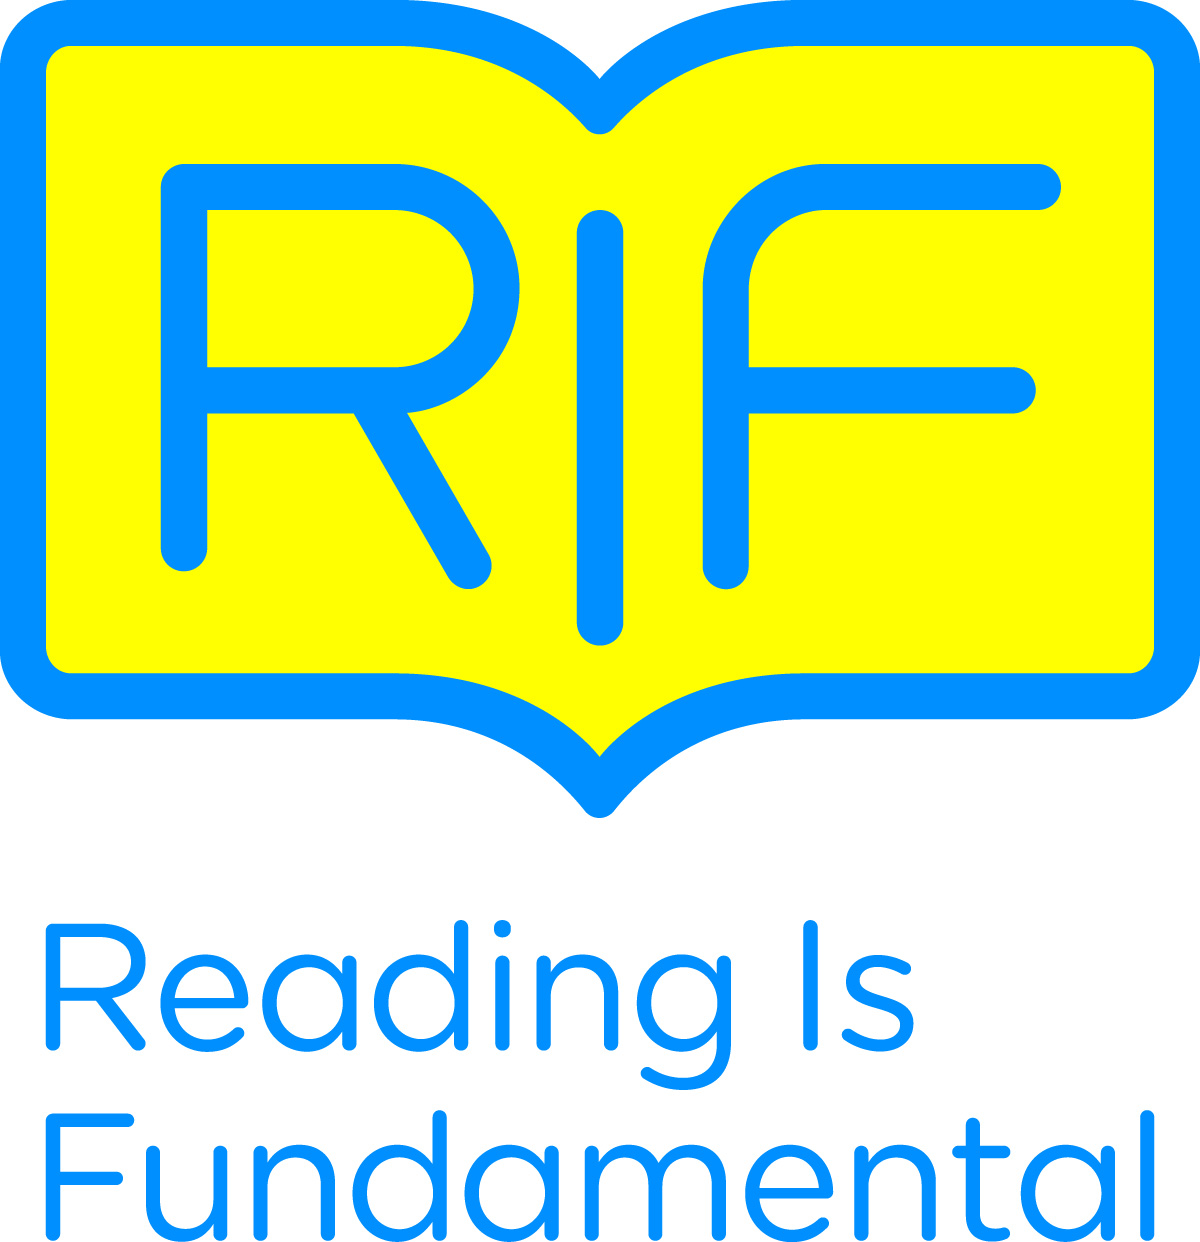 reading books is fundamental Bookmark inspired by drag queen vernacular made popular by rupauls drag race and the book covers of penguin classics reading is fundamental, and now you can have a handy reminder of just how far into reading a bitch you are.